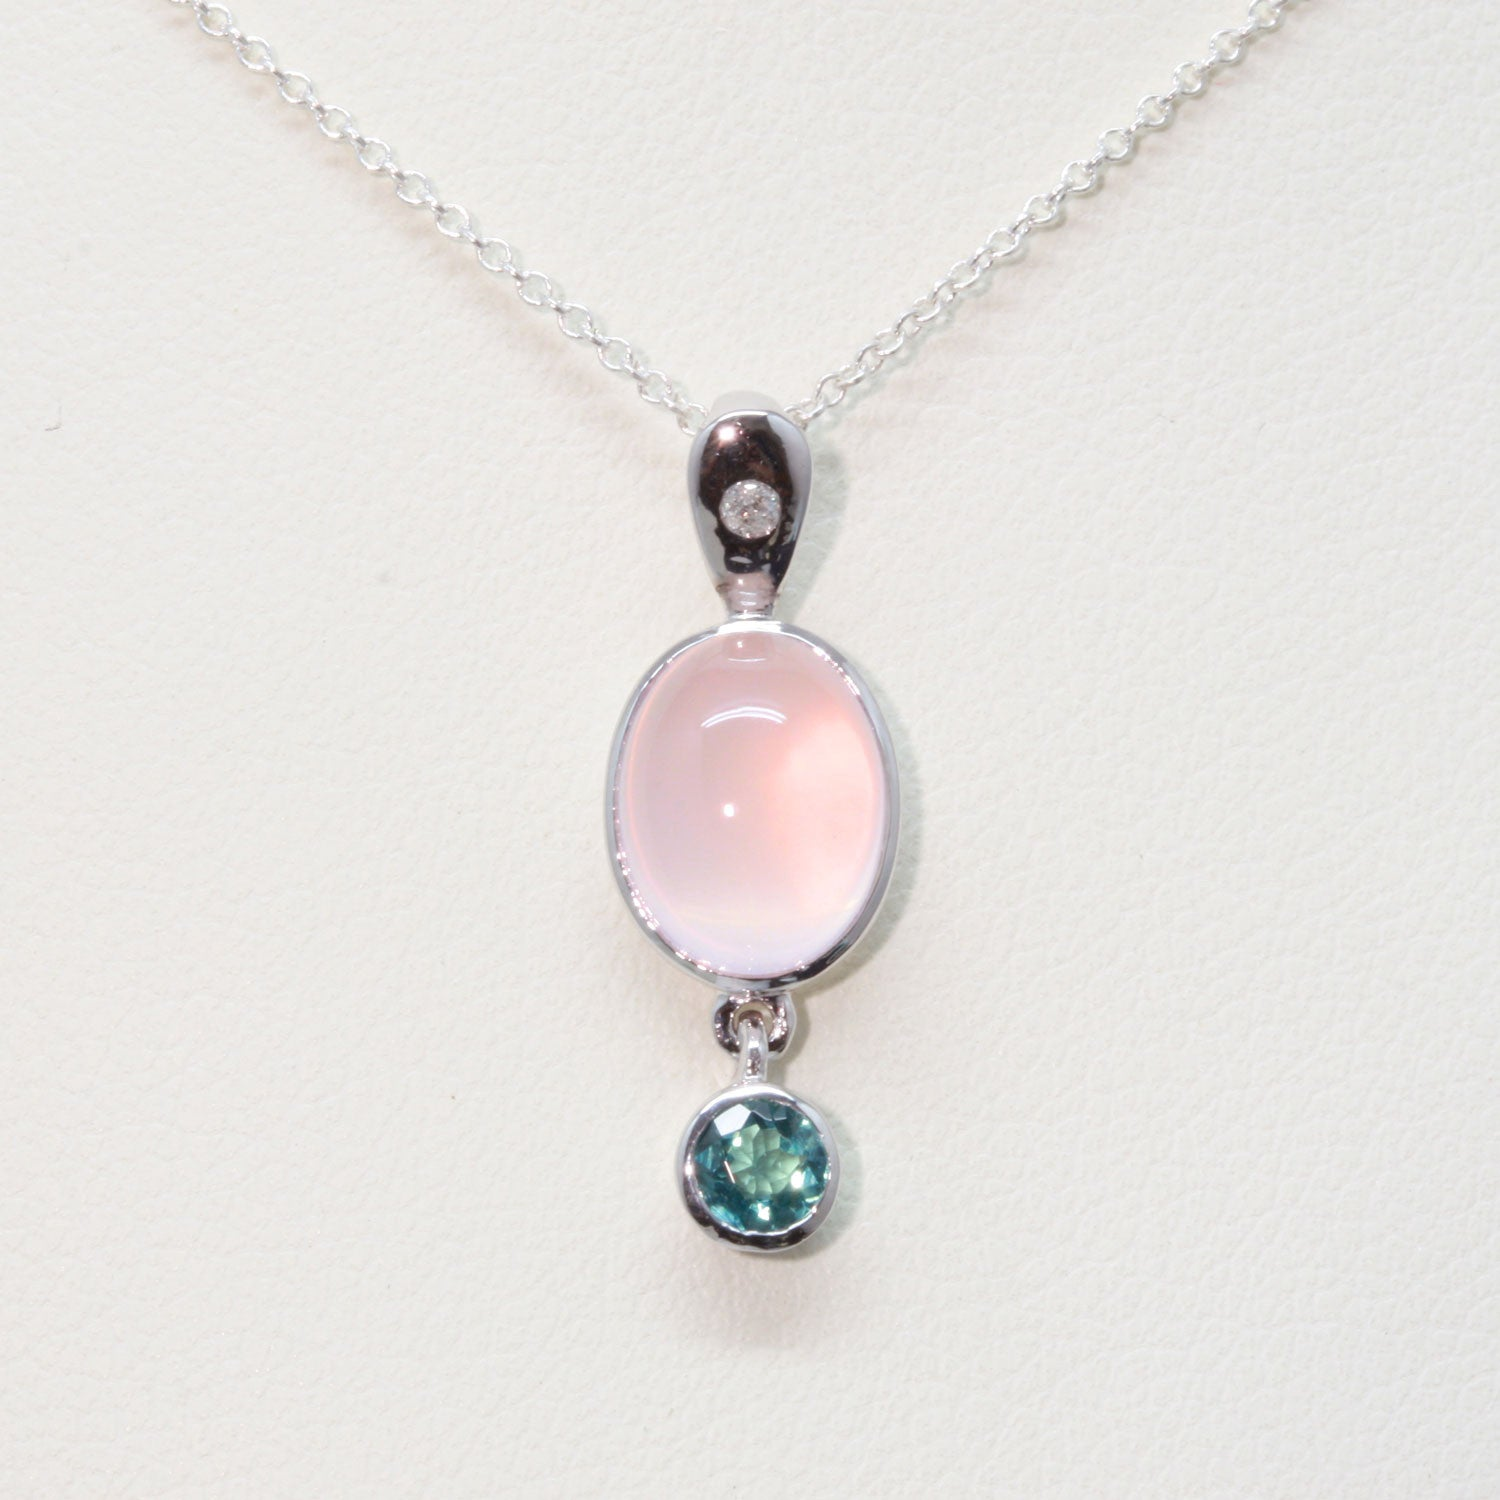 Rose Quartz, Blue Tourmaline and Diamond Pendant in 925 Silver